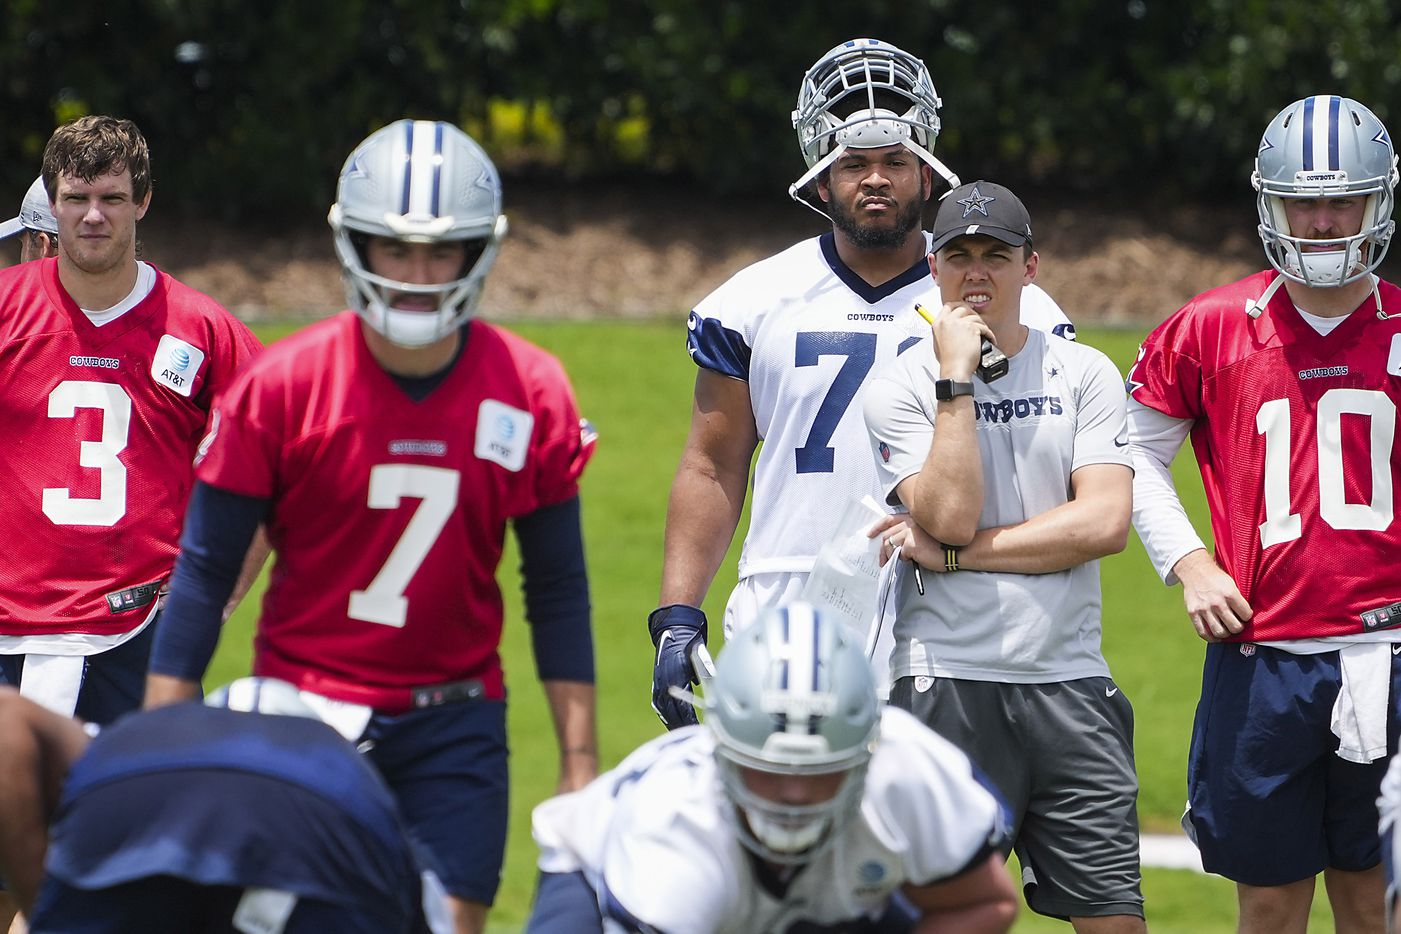 Dallas Cowboys offensive coordinator Kellen Moore watches quarterback Ben DiNucci (7) take a snap as fellow backup quarterbacks Garrett Gilbert (3) and Cooper Rush (10) look on during a minicamp practice at The Star on Tuesday, June 8, 2021, in Frisco. (Smiley N. Pool/The Dallas Morning News)